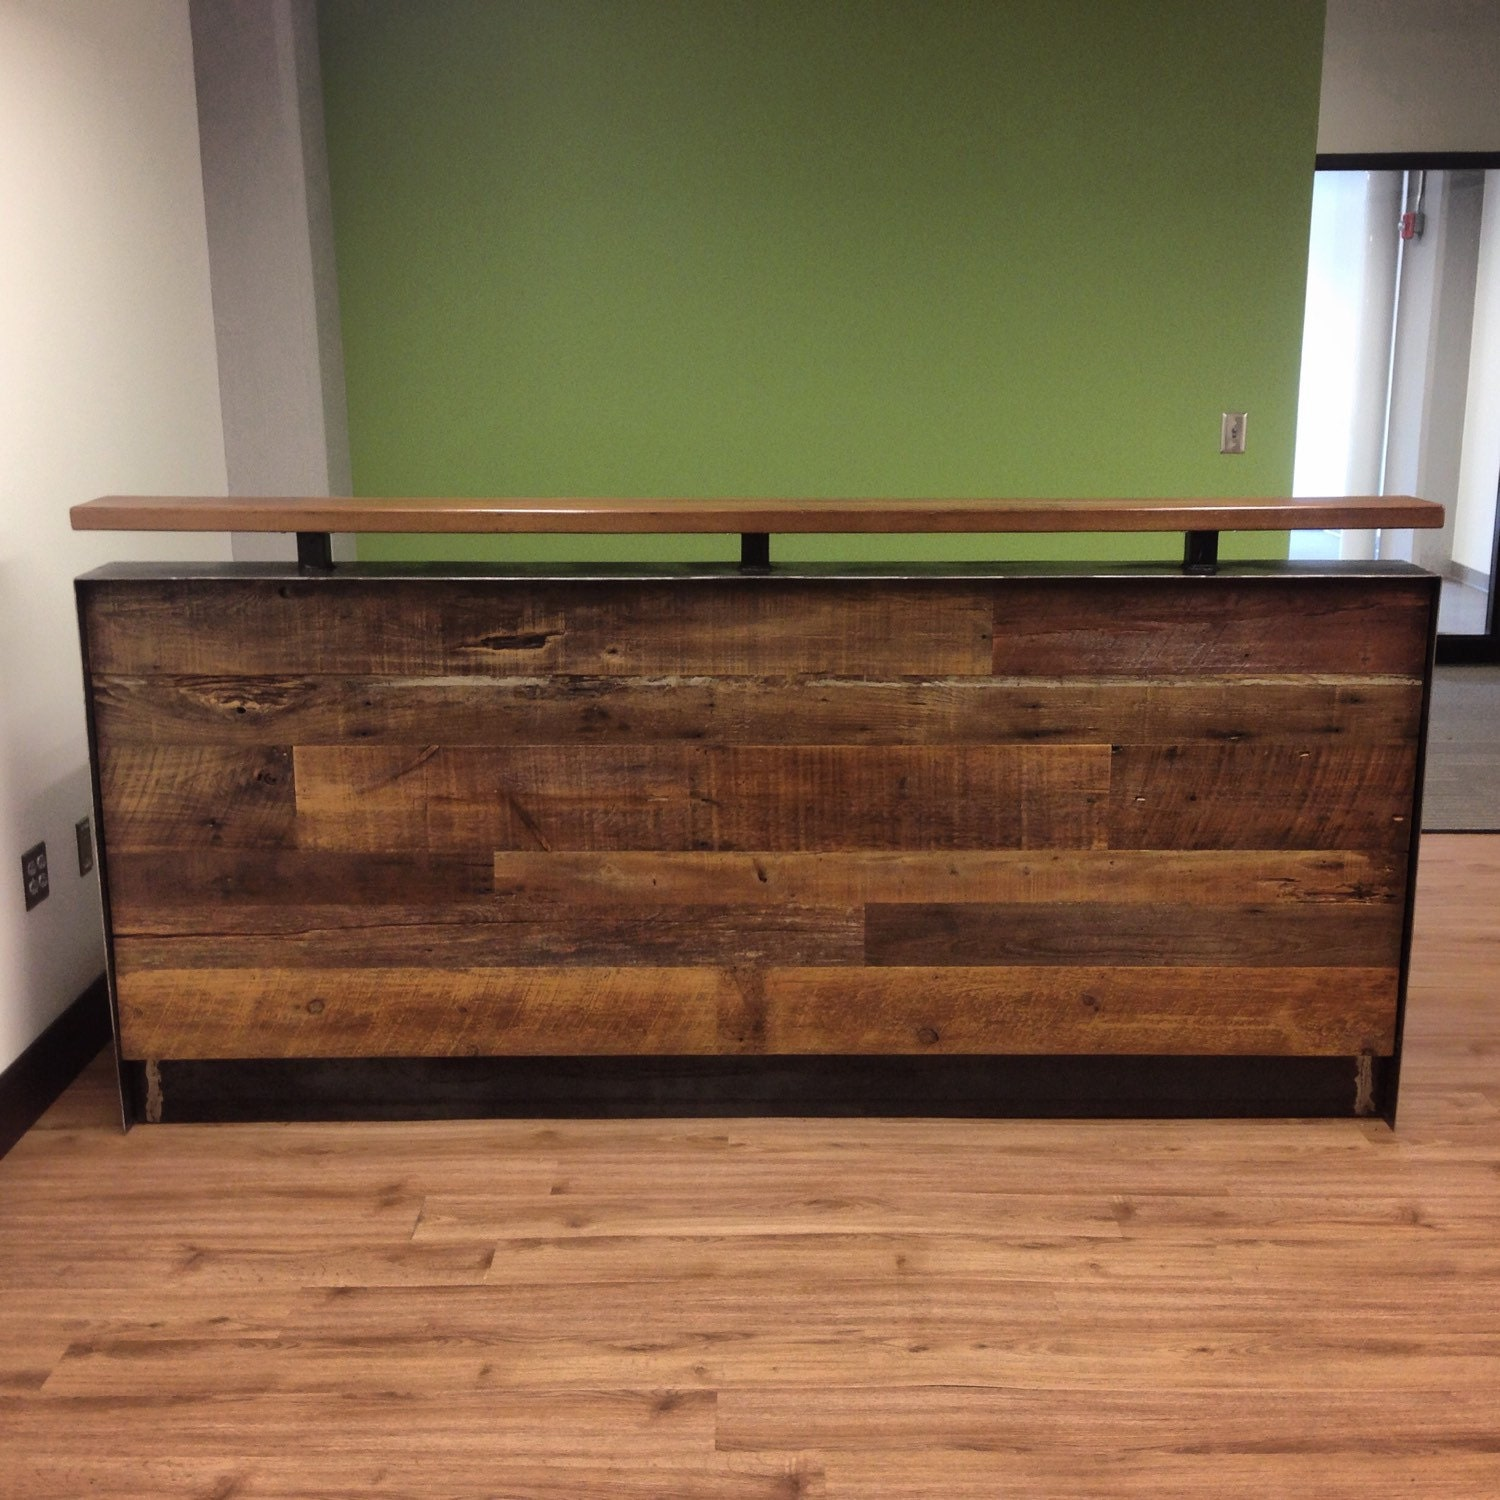 Reclaimed Wood amp Steel Reception Desk